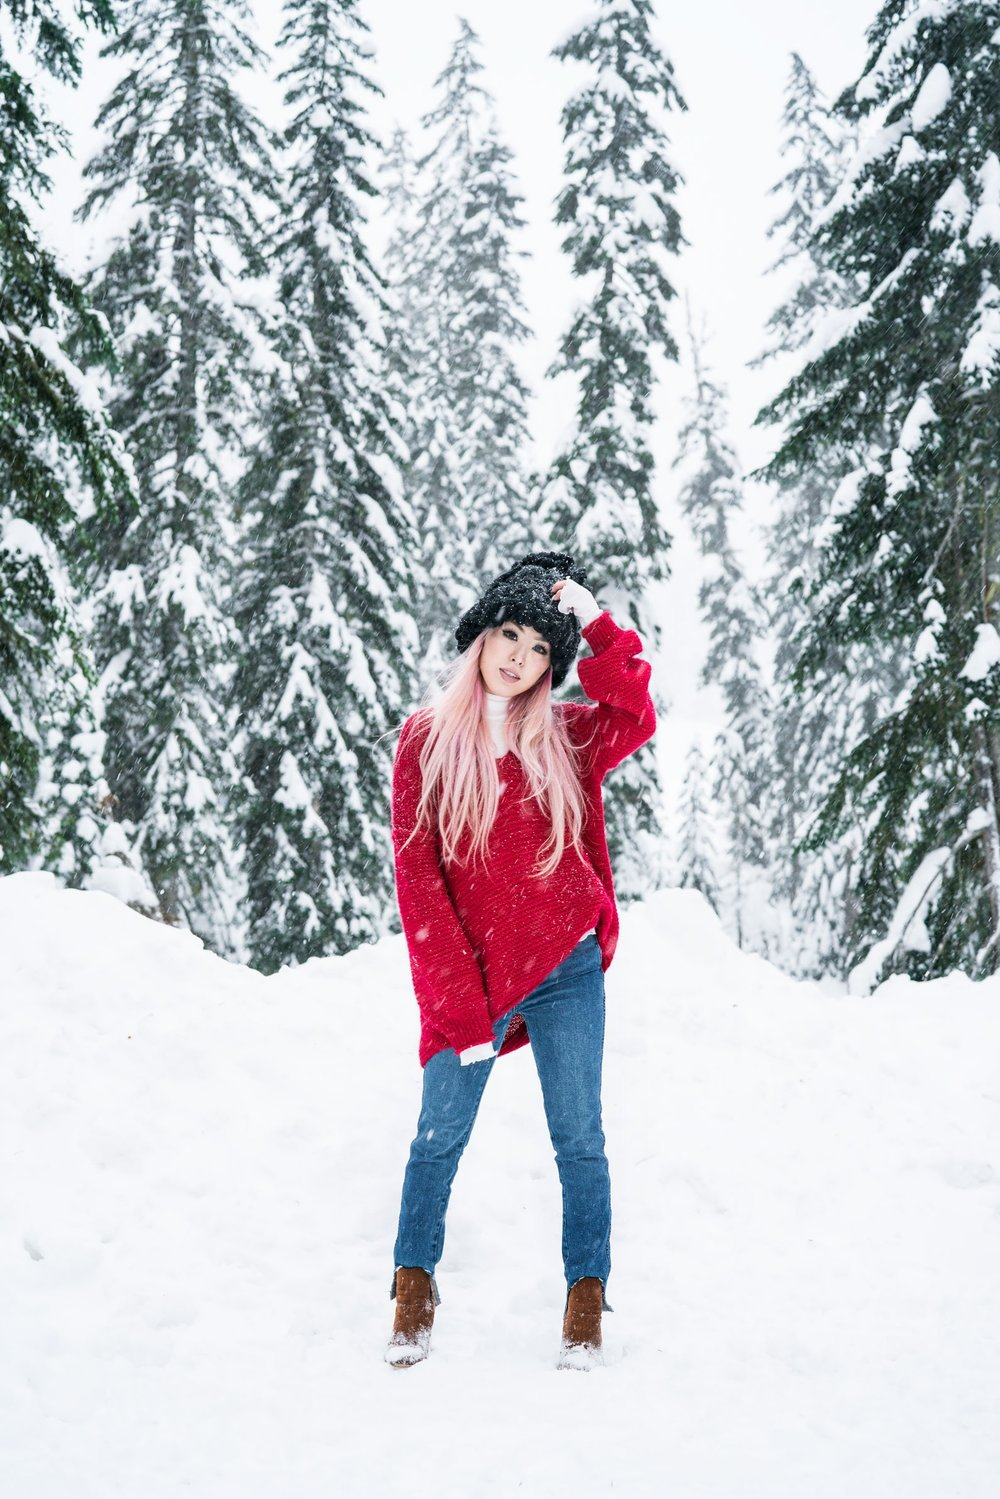 Free people All Mine Sweater, Free People Modern Cuff Layering Top, Free People Ace High Rise Jeans, Free People Bobbi Chunky Pom Beanie, EGO Ankle Boots, Aika's Love Closet, Seattle Fashion Blogger from Japan, Pink Hair 4